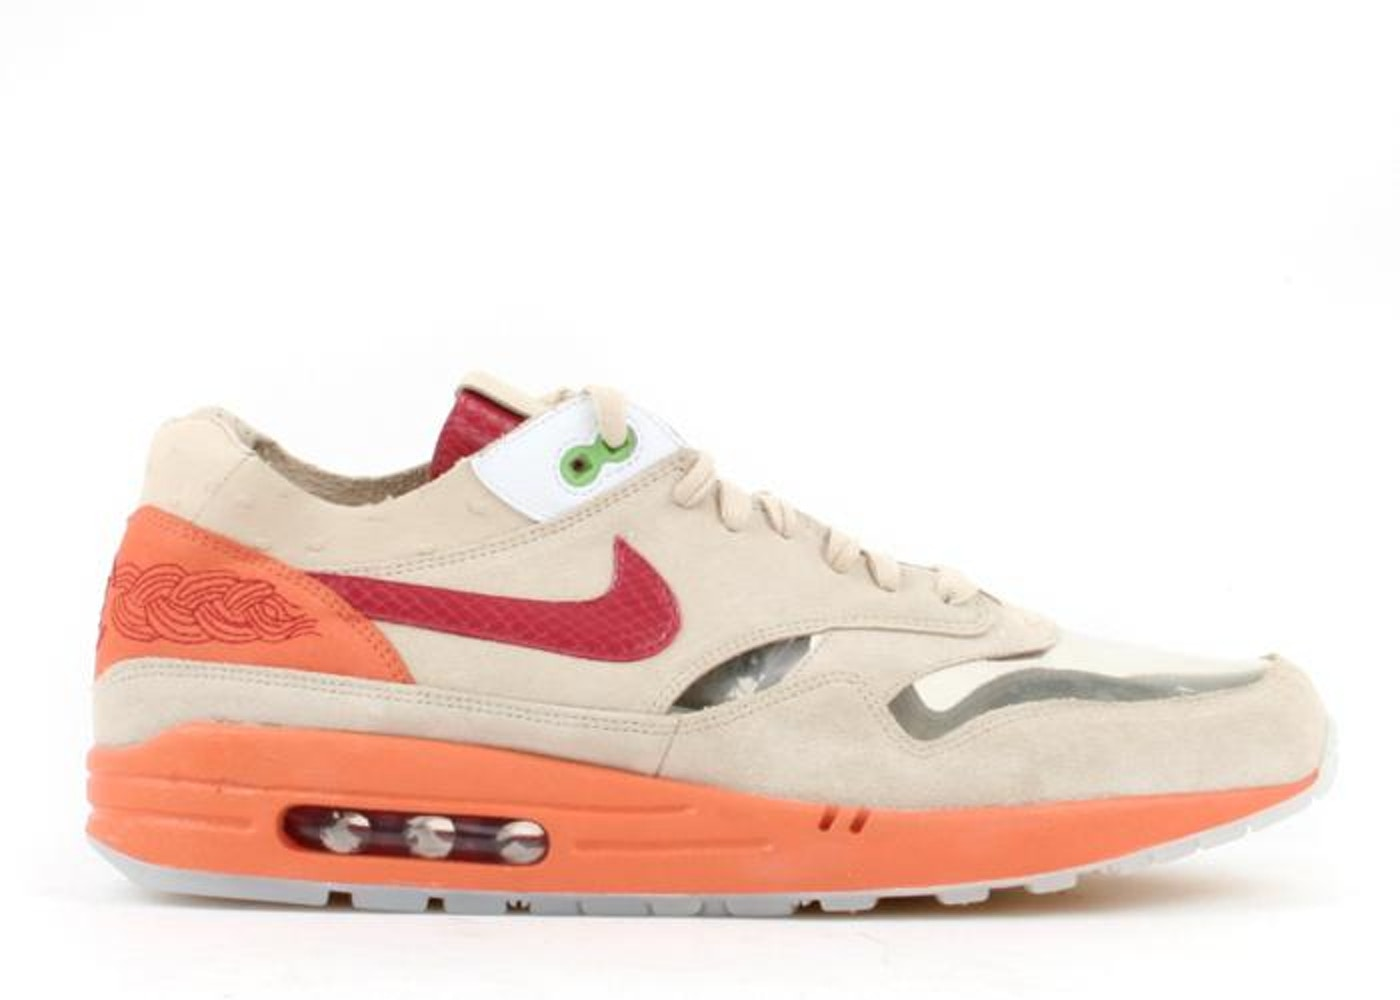 b98f8cdf Air Max 1 NL SP Clot